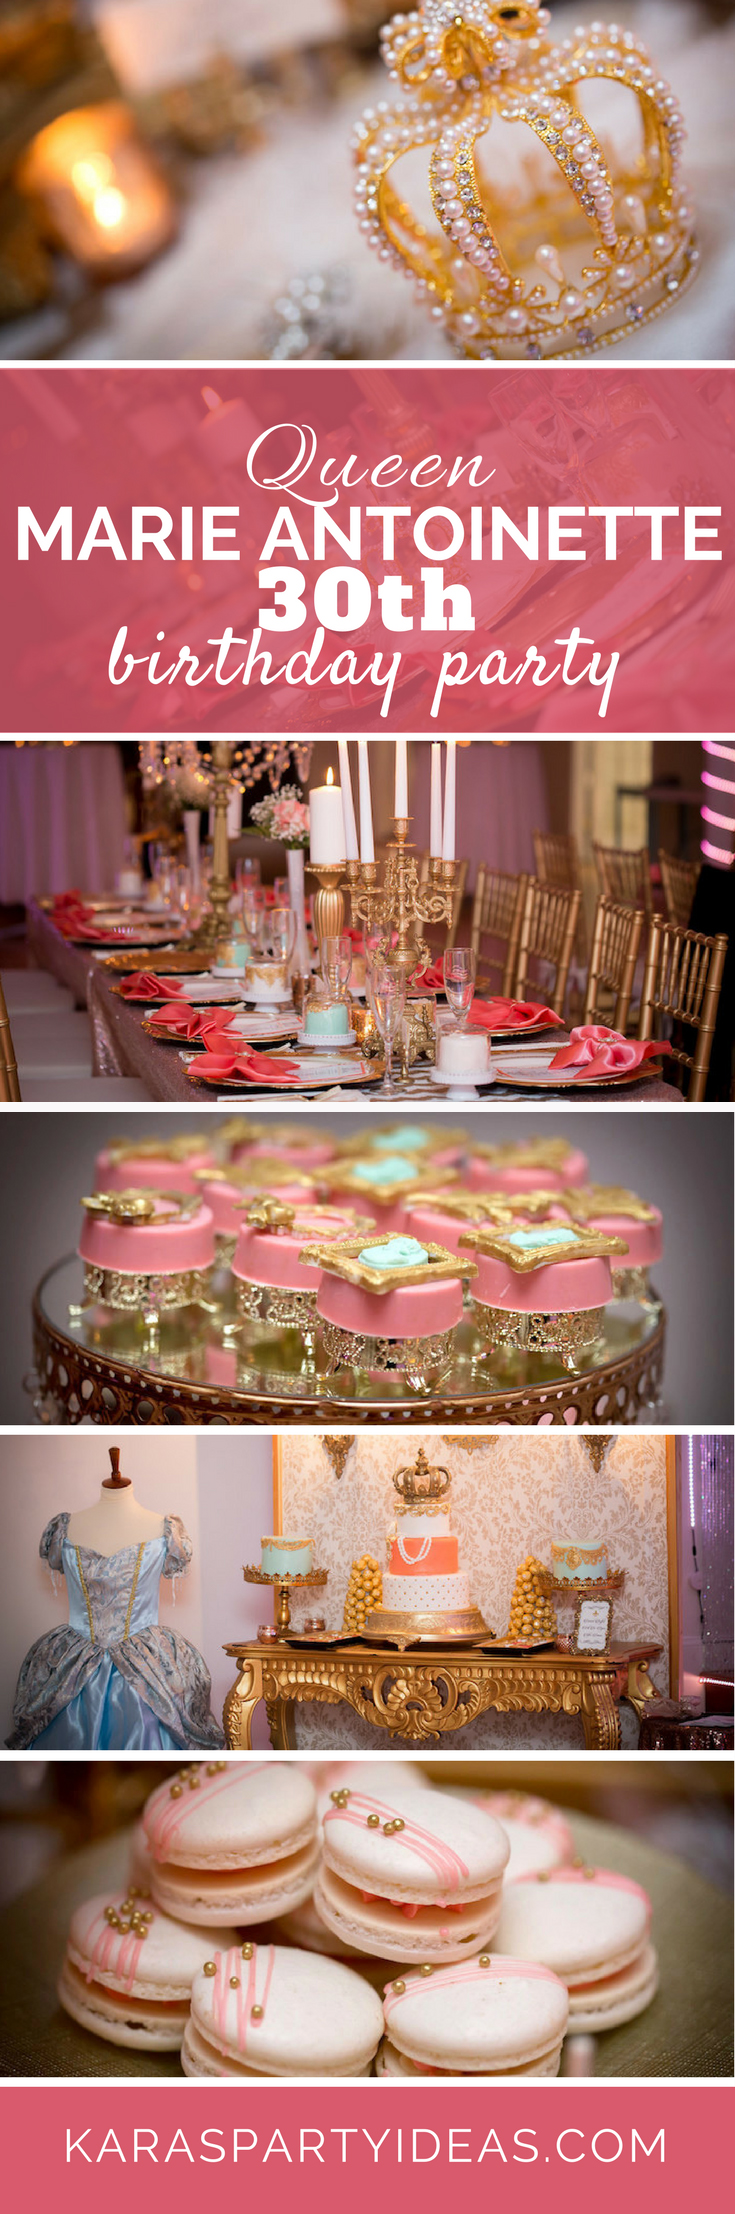 Queen Marie Antoinette 30th Birthday Party via Kara's Party Ideas - KarasPartyIdeas.com